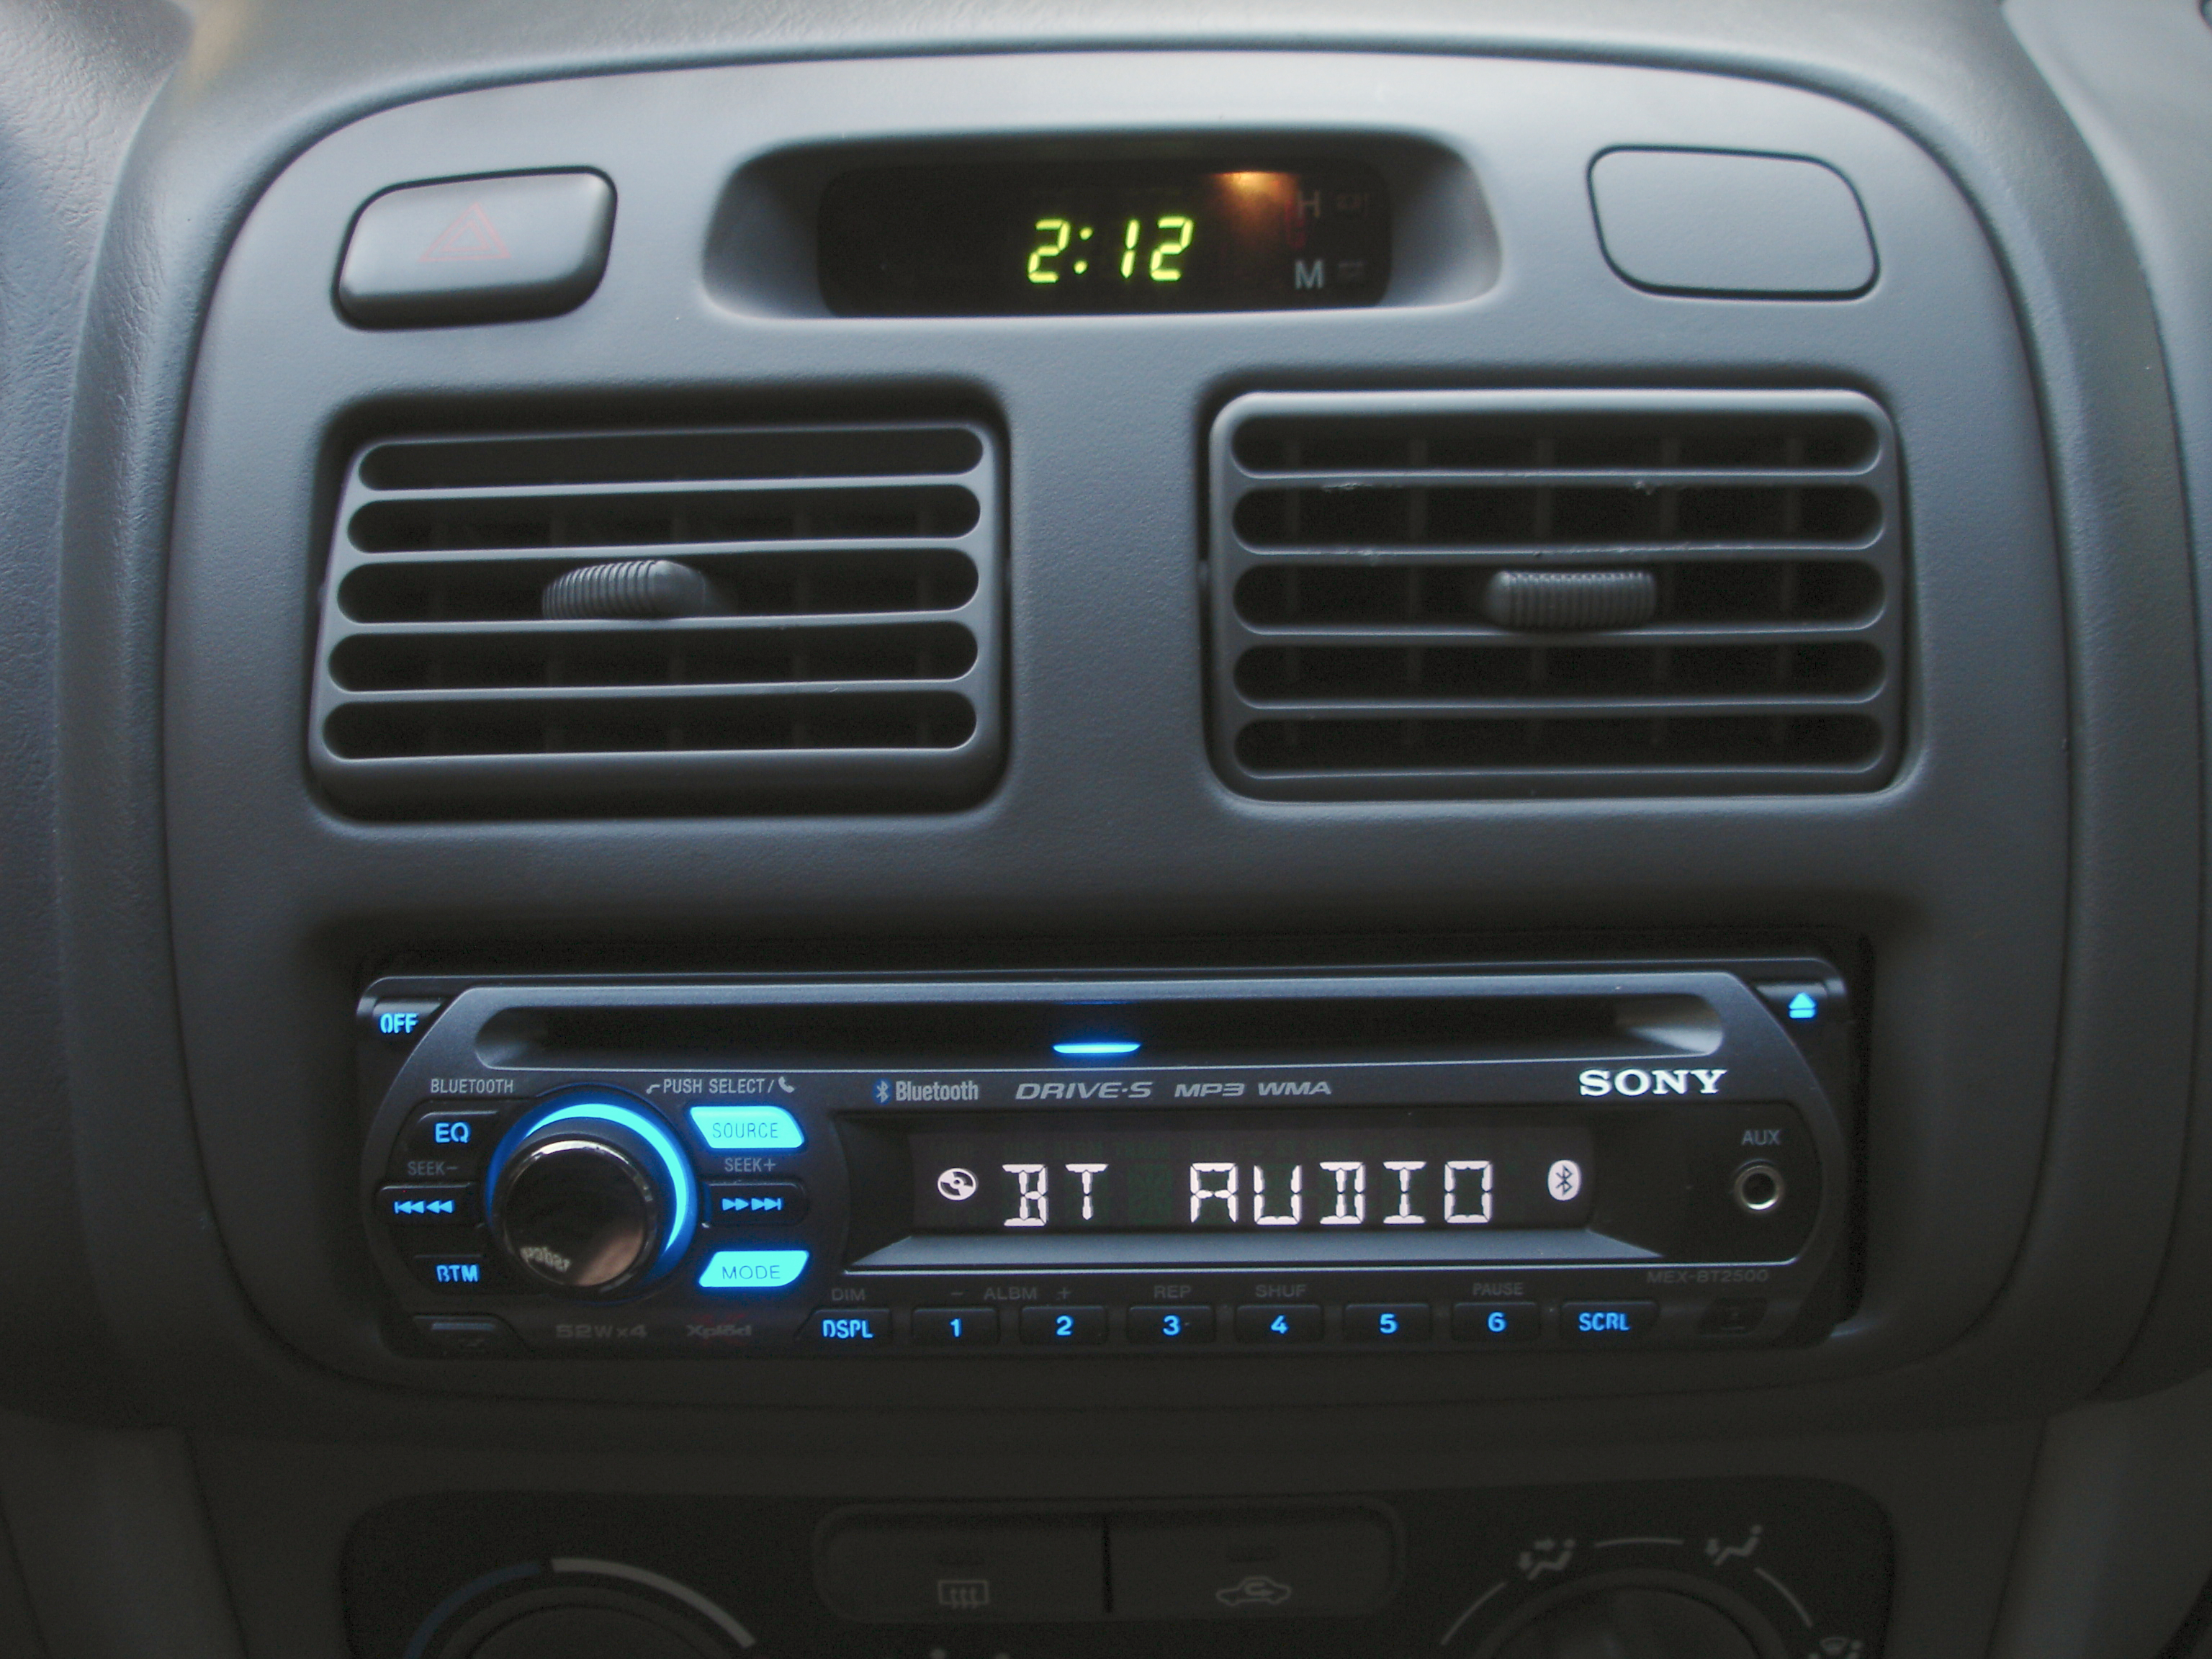 Sony dab car radio with bluetooth